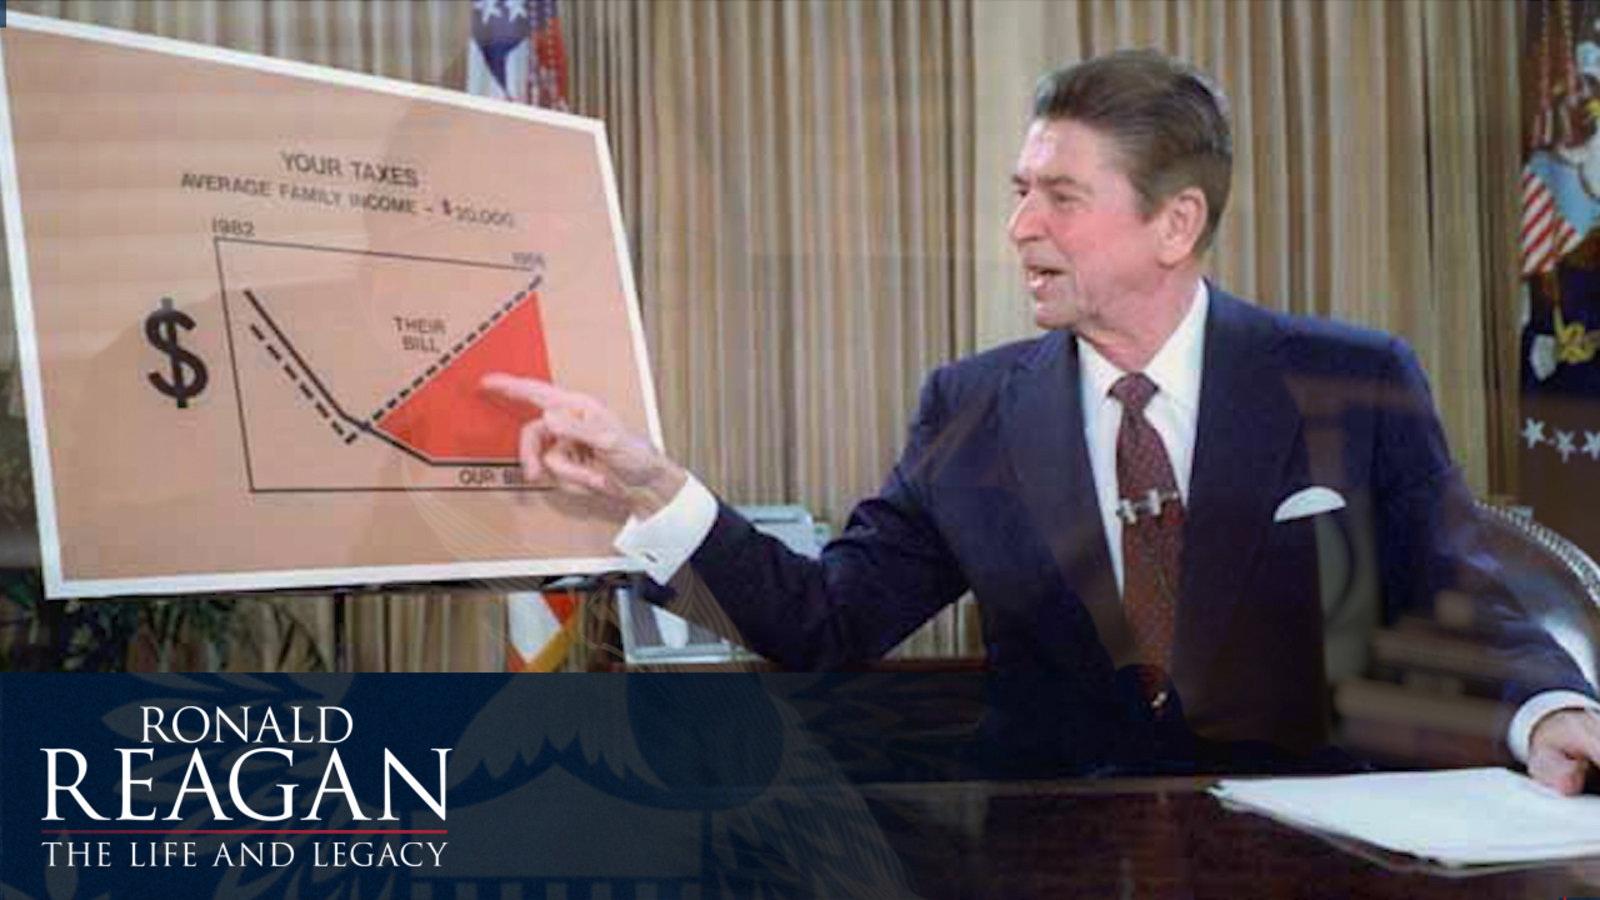 Ronald Reagan - The Life and Legacy - The Supreme Court and Reaganomics